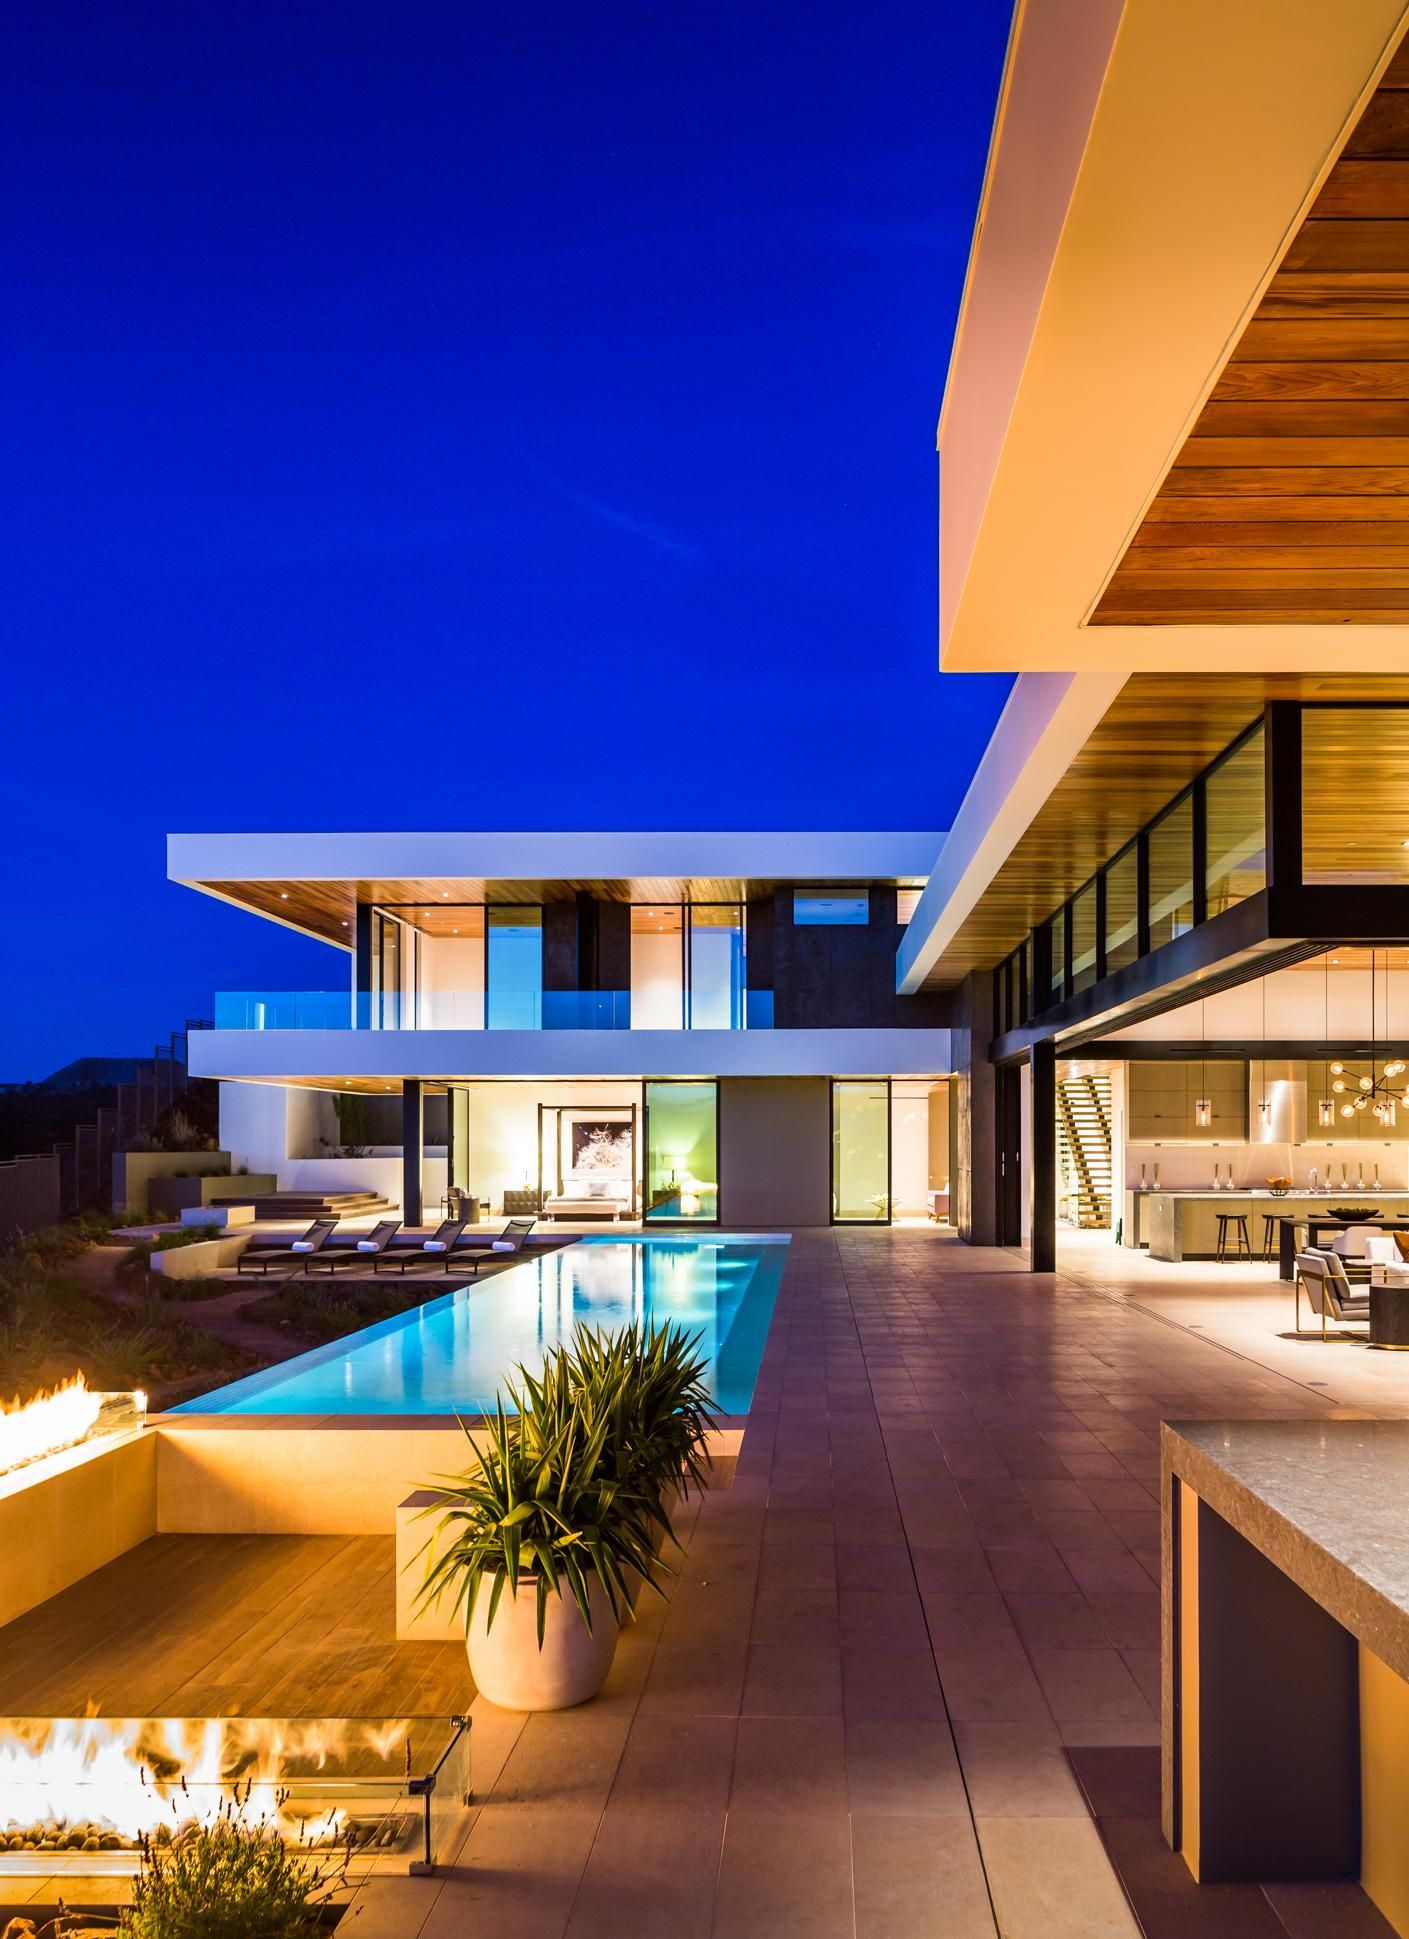 SB Architects Design Architectural 'inspiration Home' For